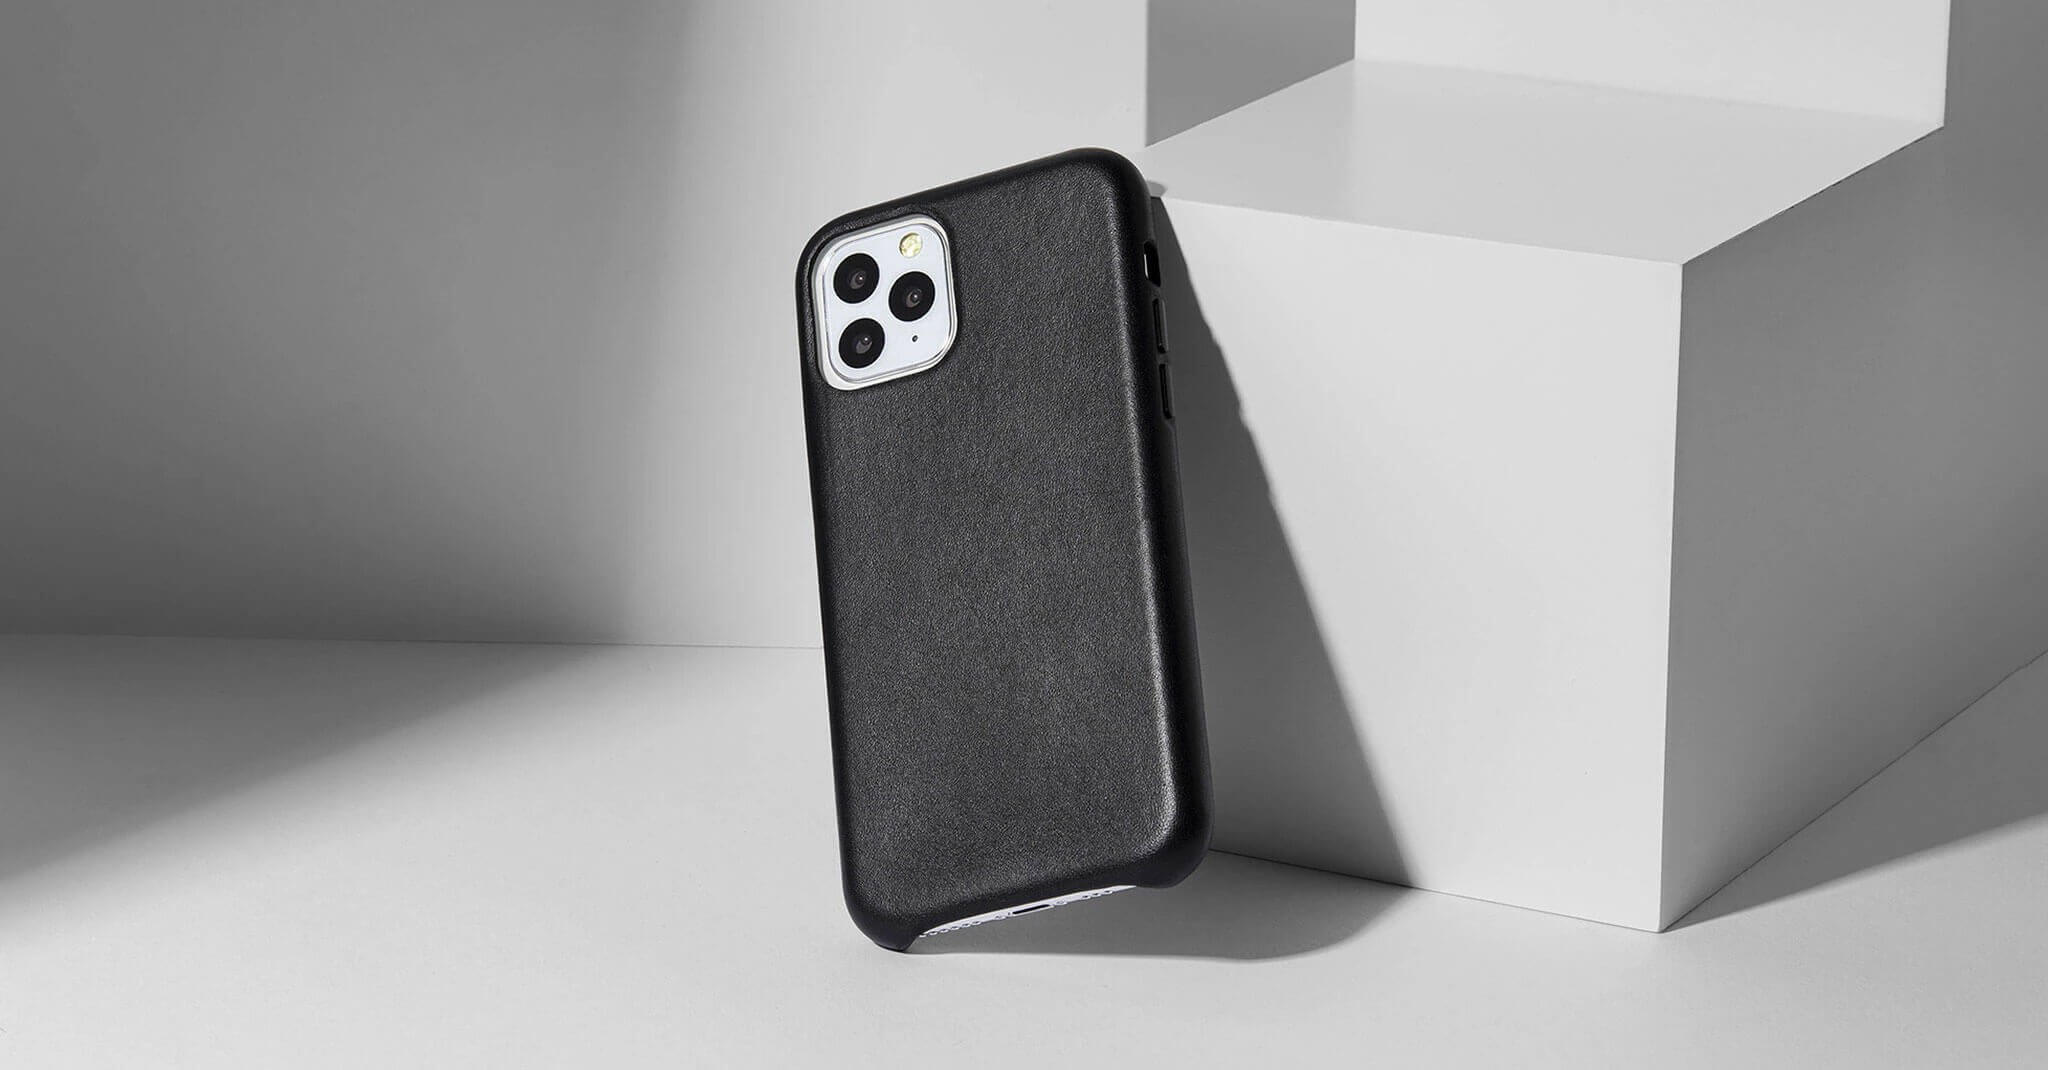 leather totallee cases for iPhone and Pixel